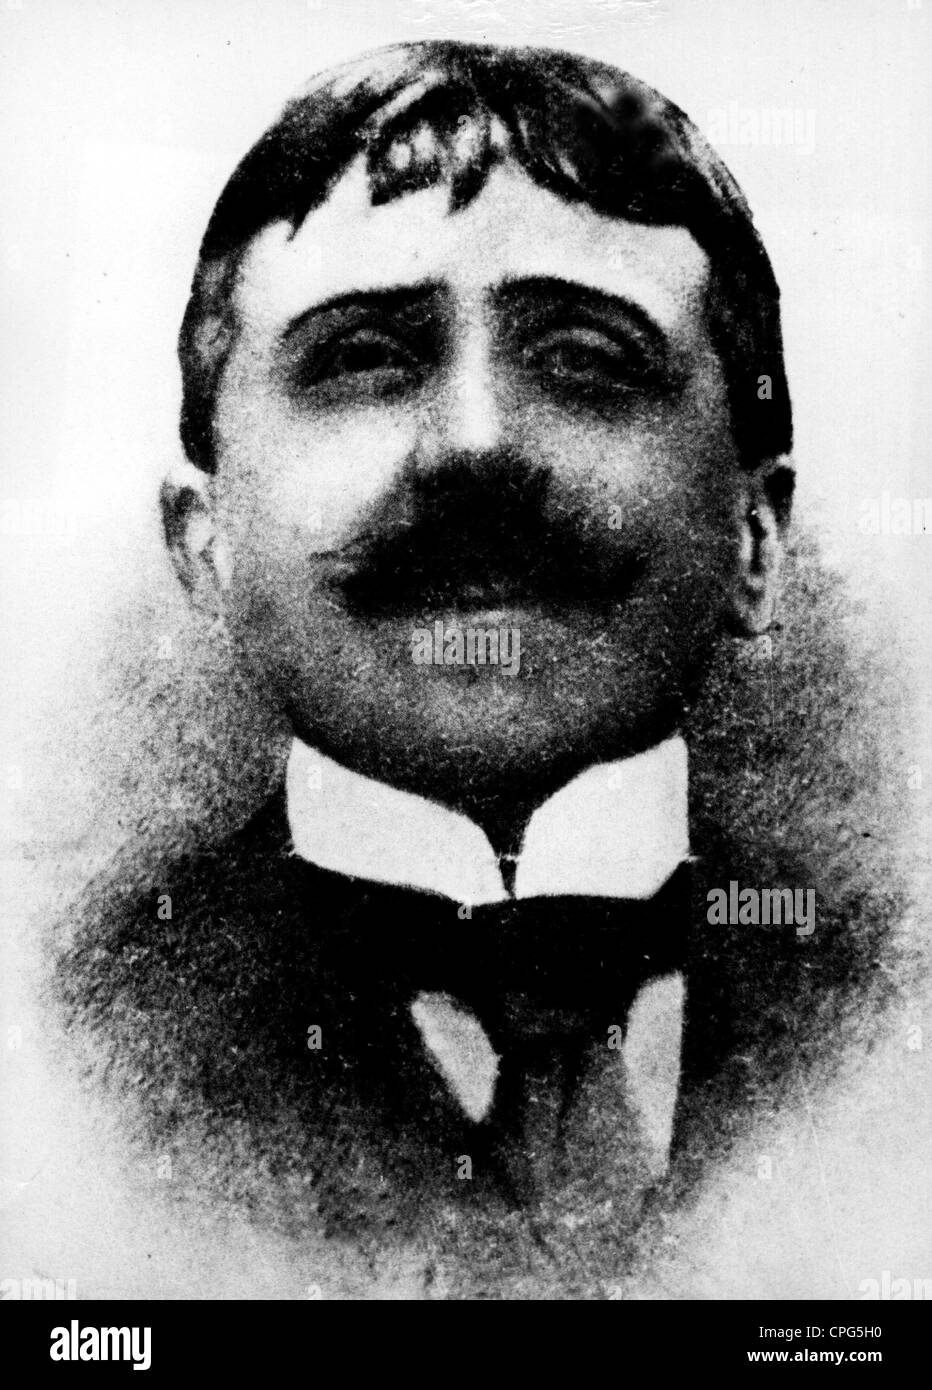 french author writer stock photos french author writer stock proust marcel 10 7 1871 18 11 1922 french author writer